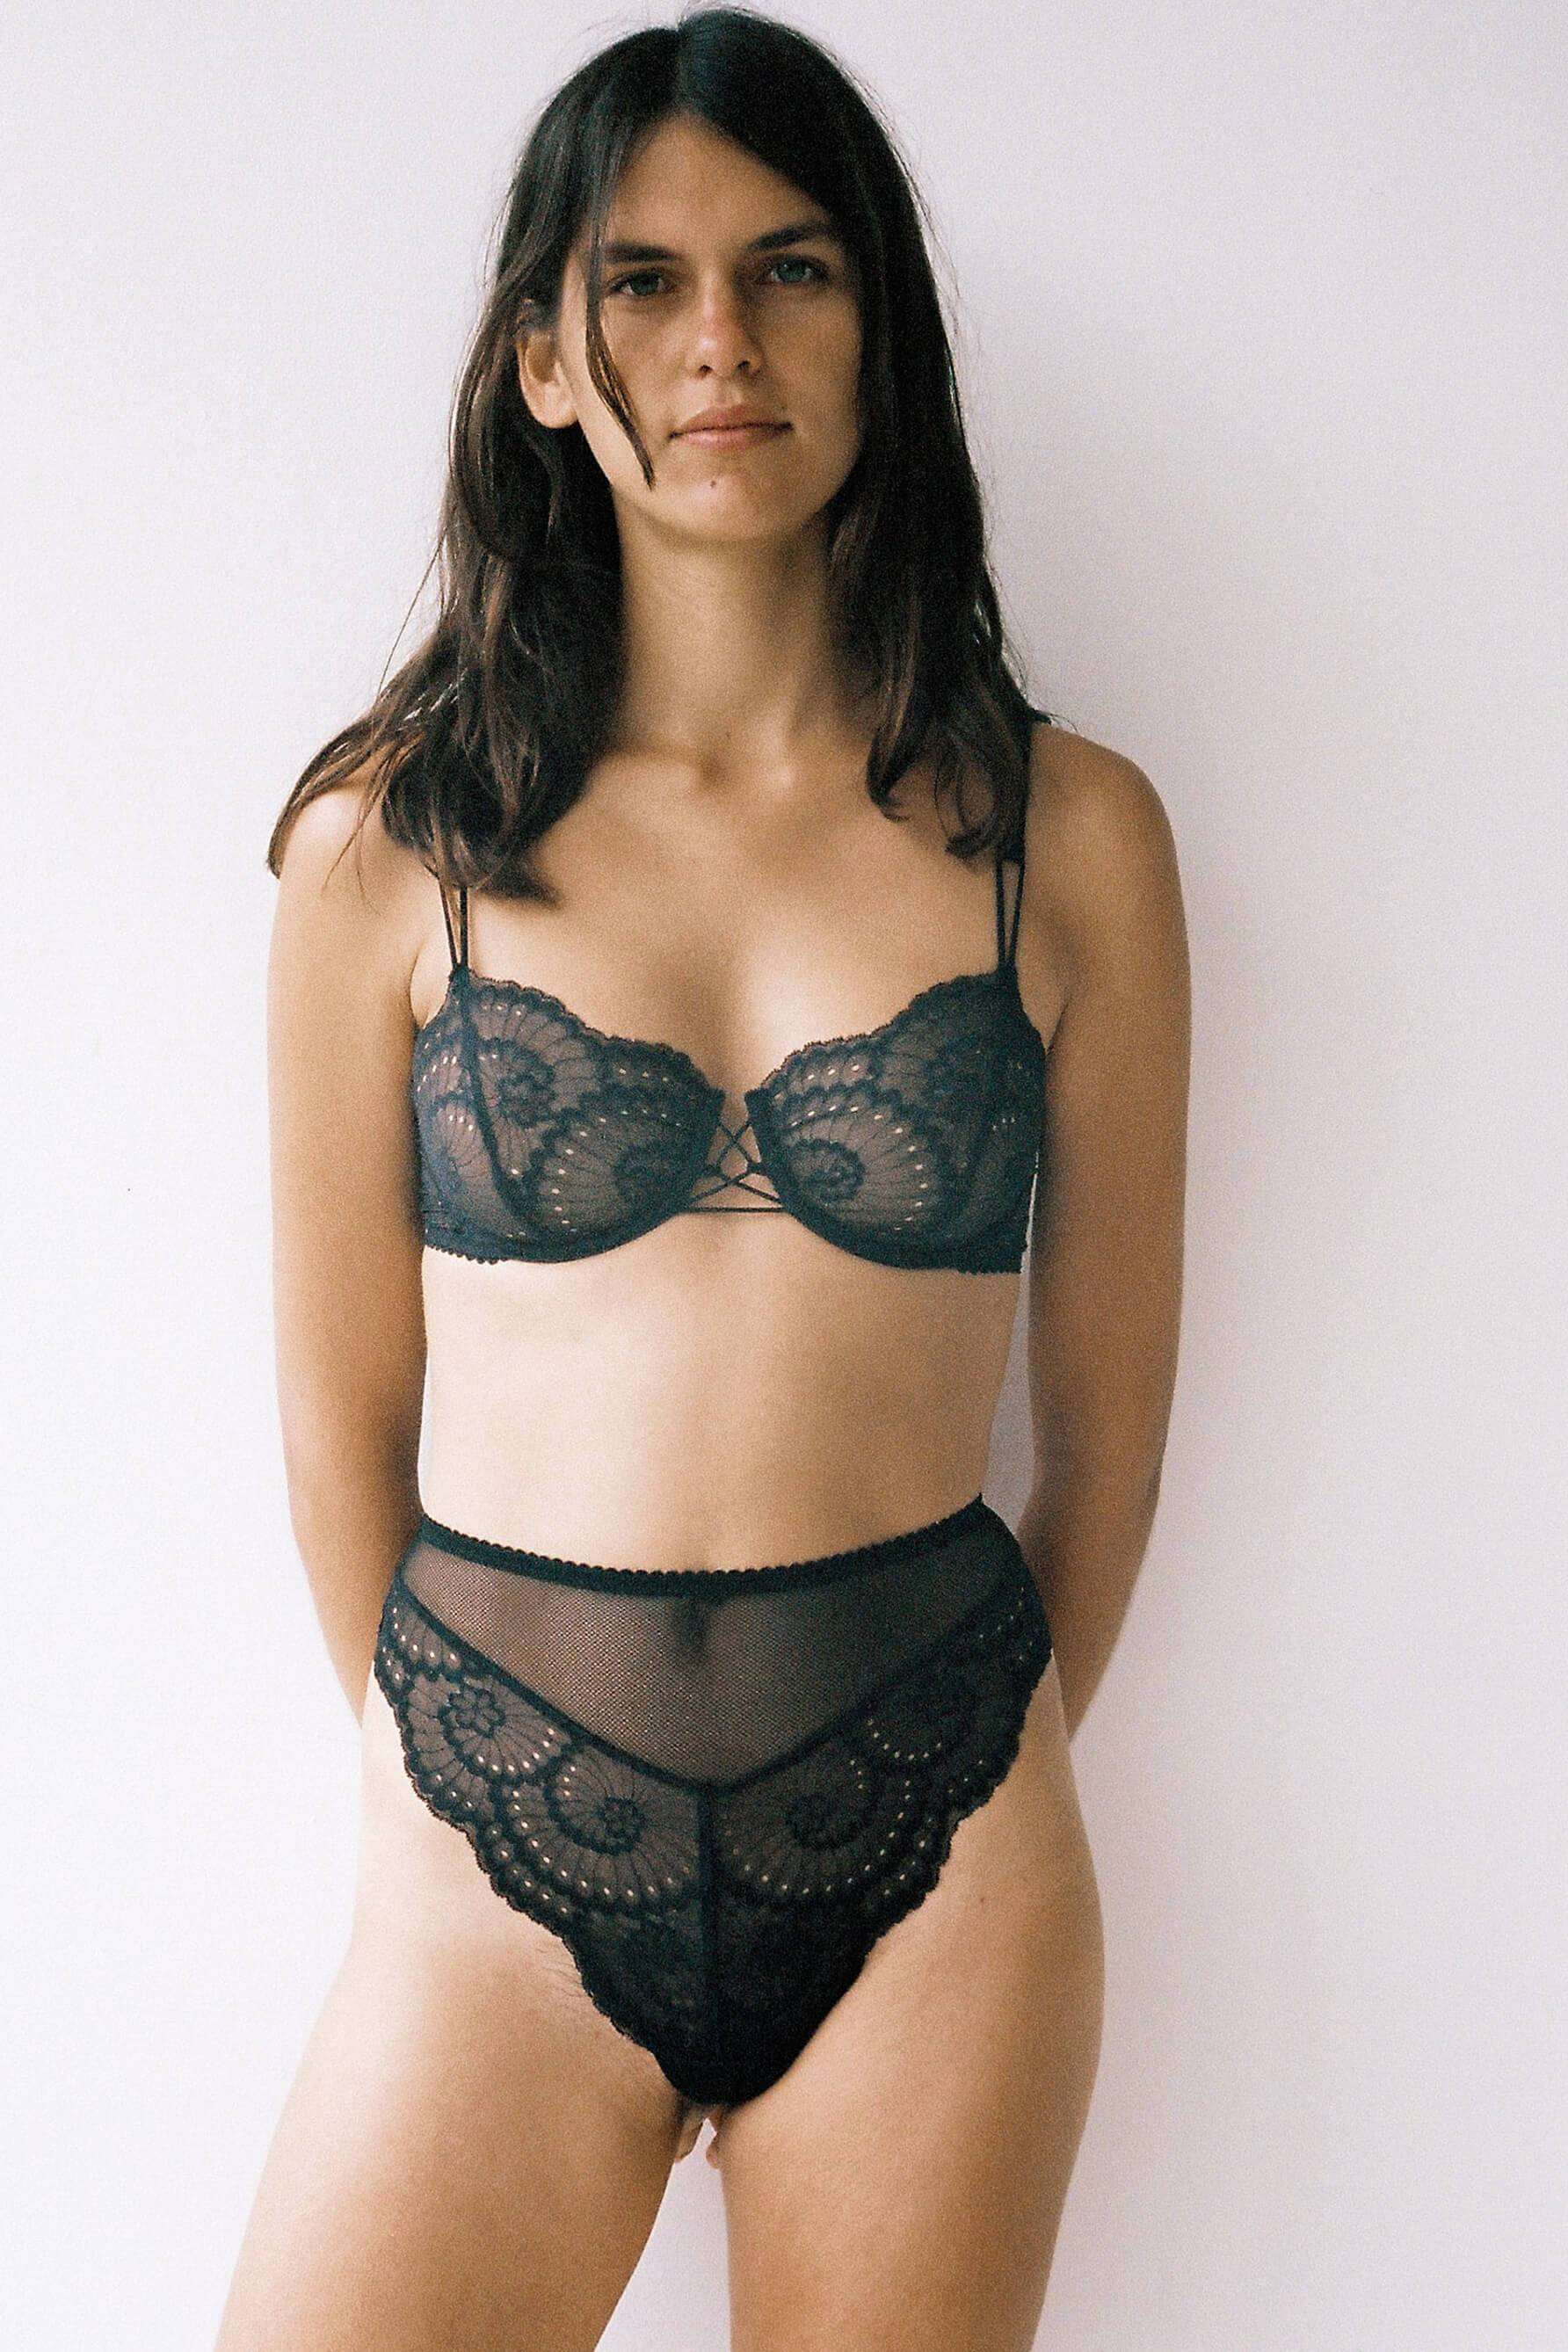 Lonely Delilah Underwire Bra in Sheer Black Lace